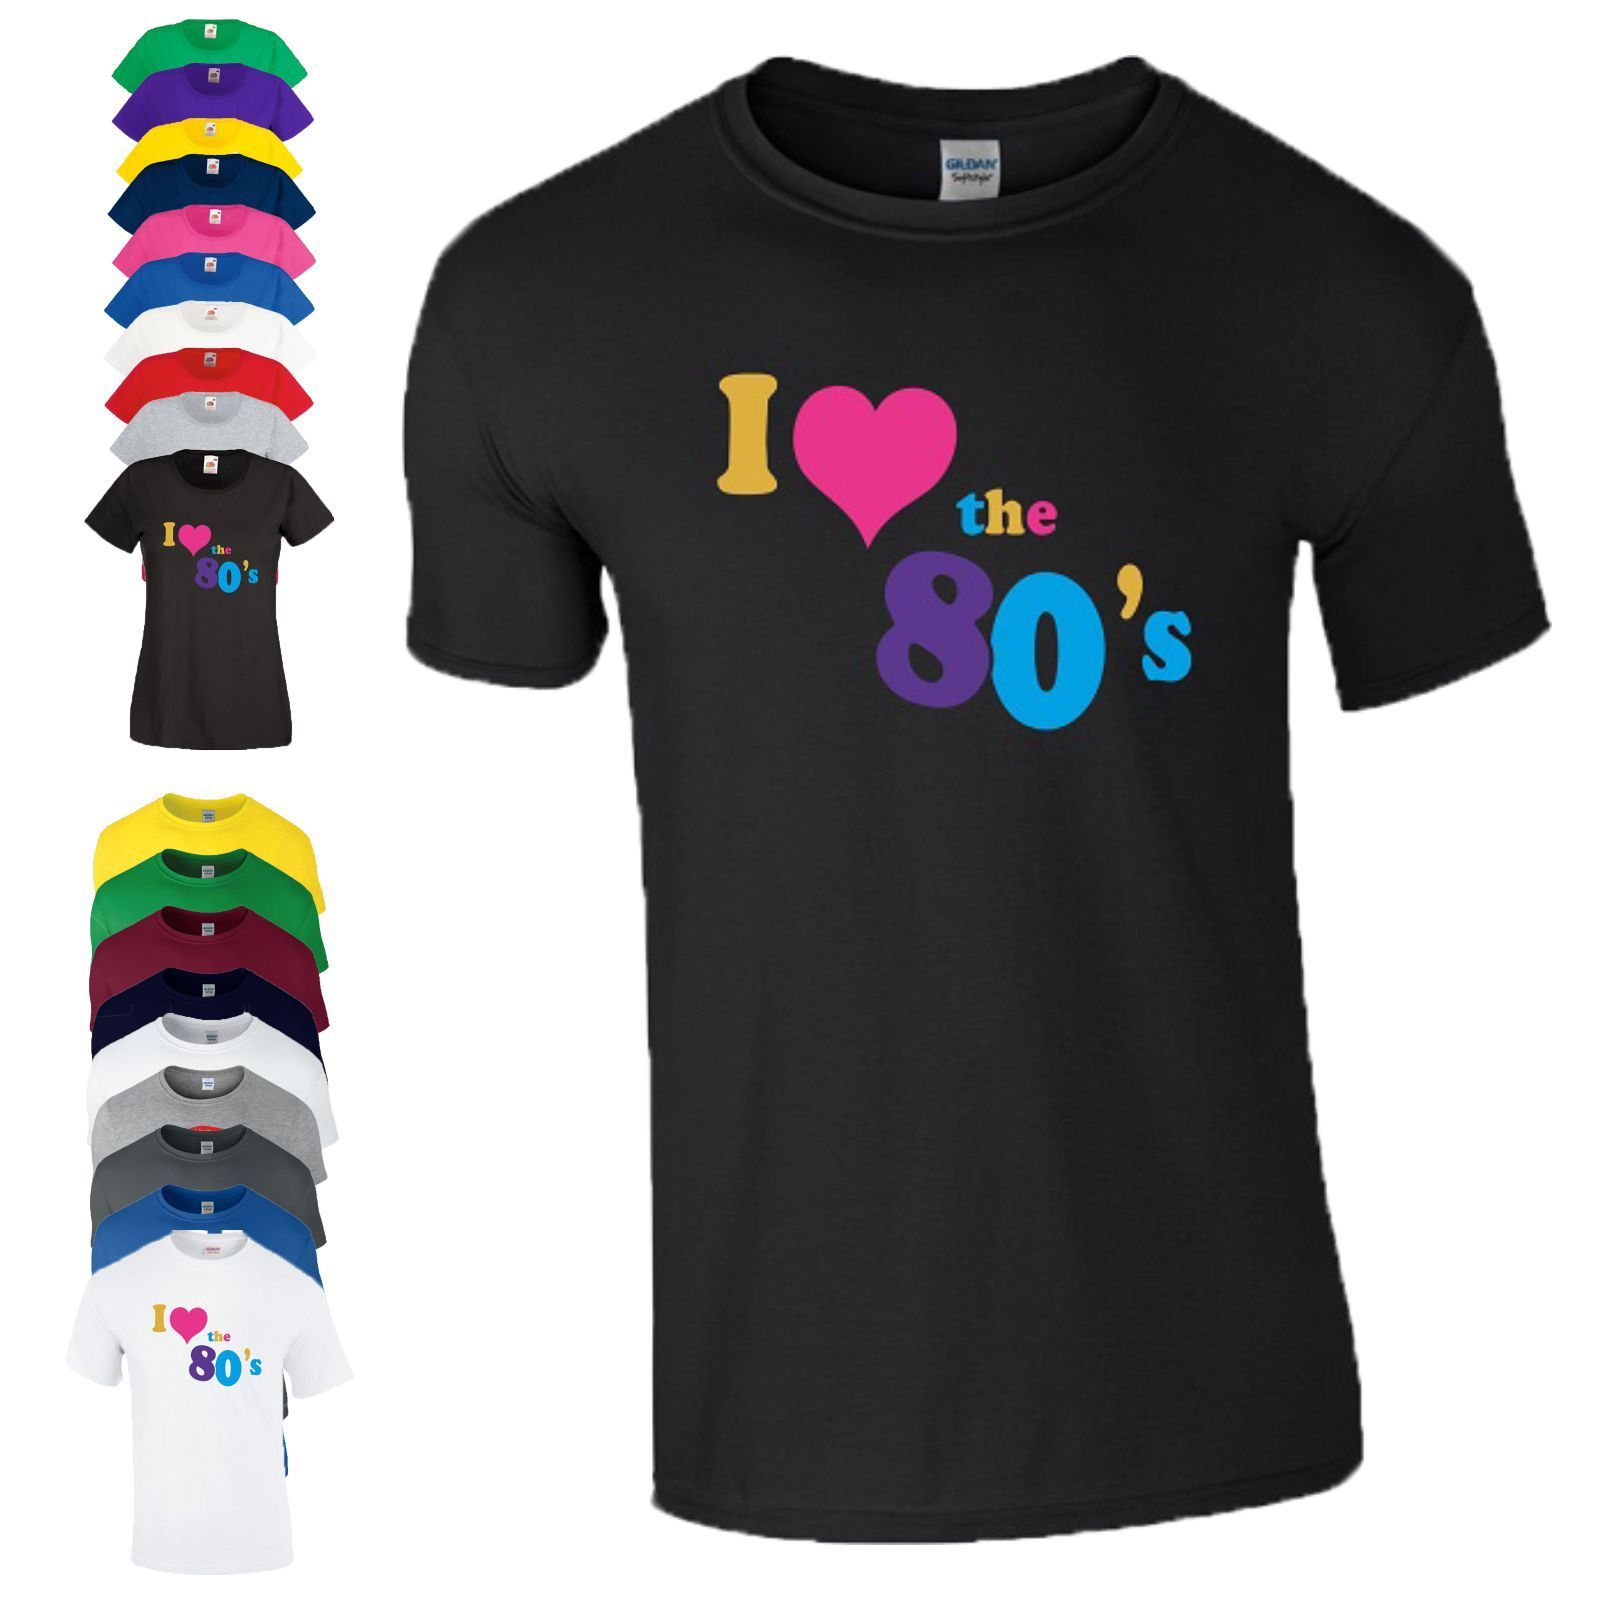 30a5d7f54f060 US $11.88 15% OFF|I Love 80's Slogan T Shirt Made In 80s Fancy Costume  Dress Party Gift Men Ladies Fashion T Shirts Summer Straight 100% Cotton-in  ...